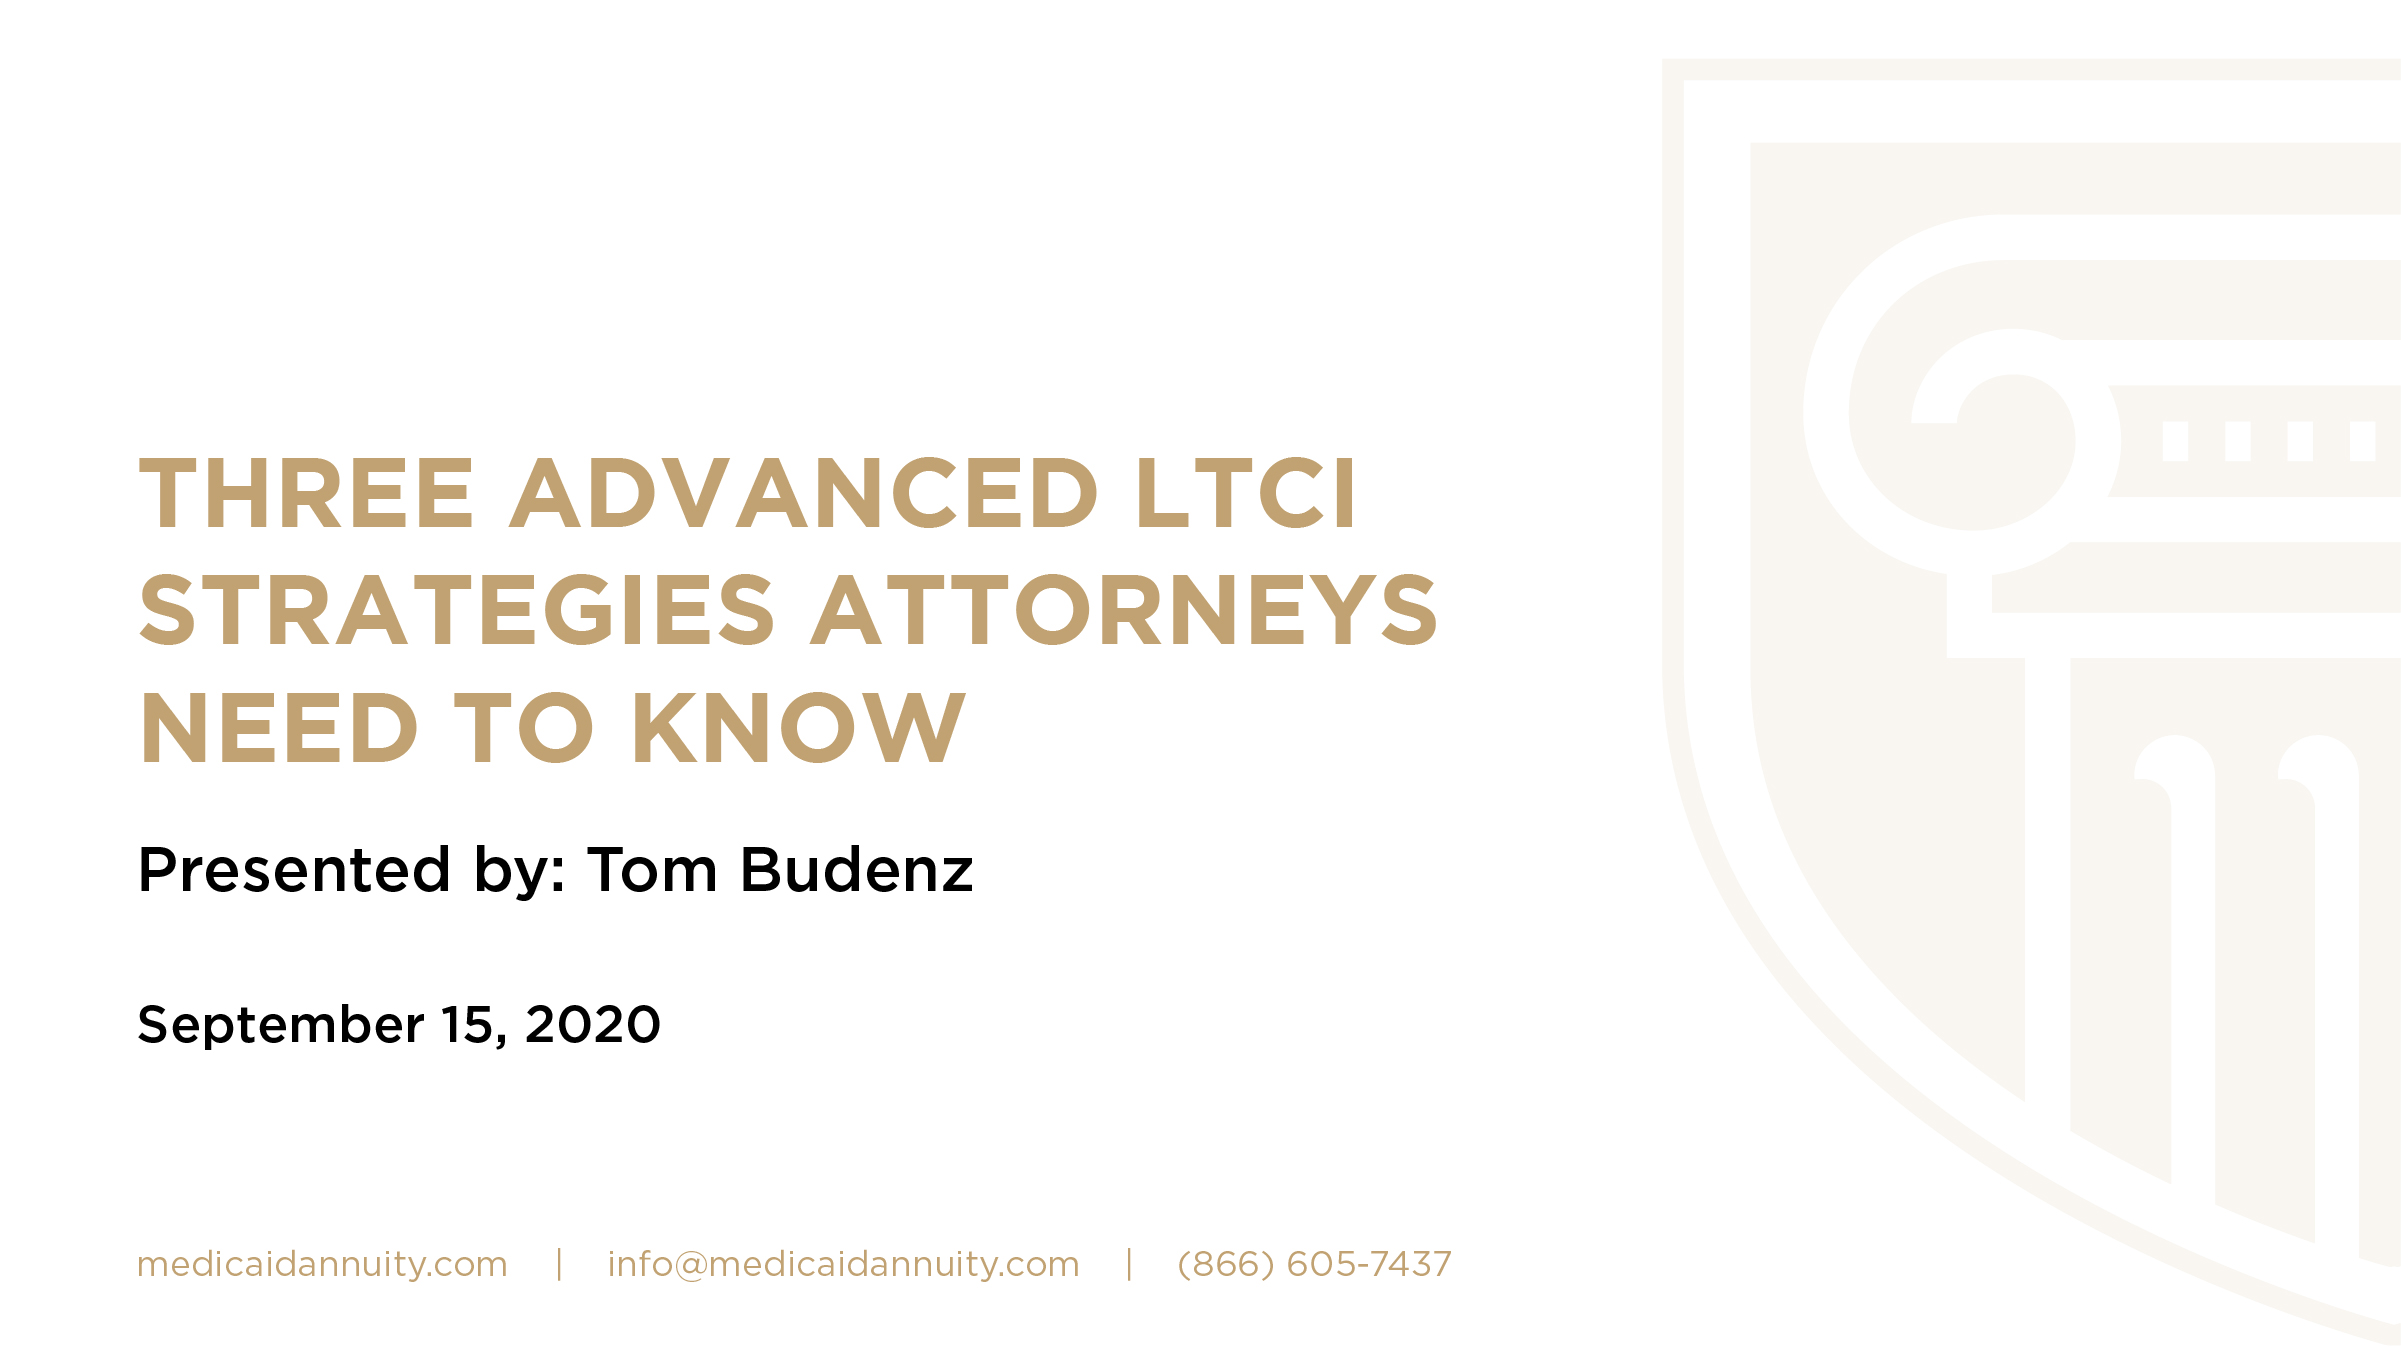 Three Advanced LTCI Strategies Attorneys Need to Know